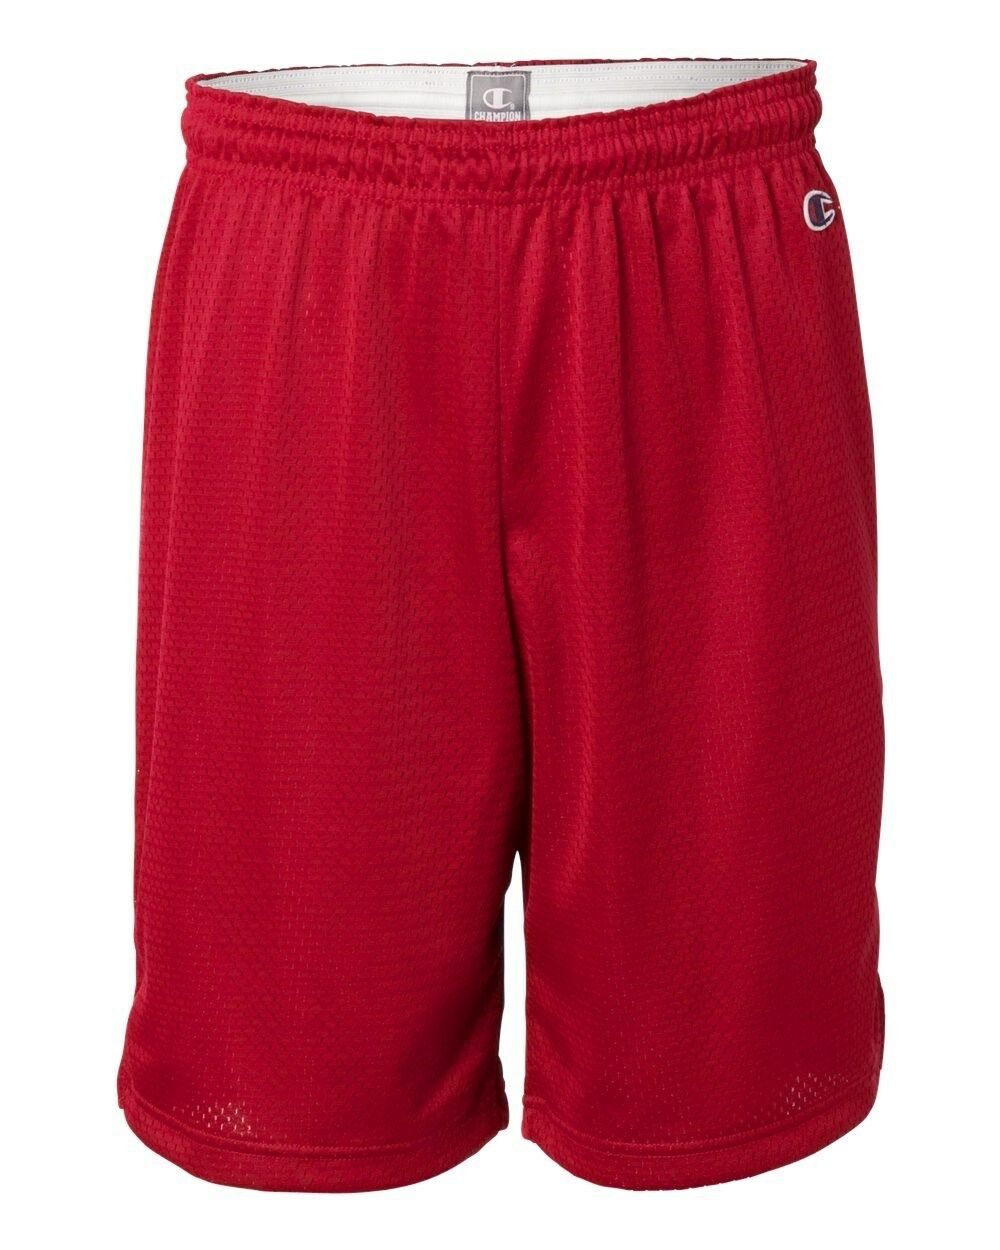 """Champion Mens Shorts Poly Mesh 9/"""" inseam Basketball Gym Workout S-3XL 8731 NEW"""